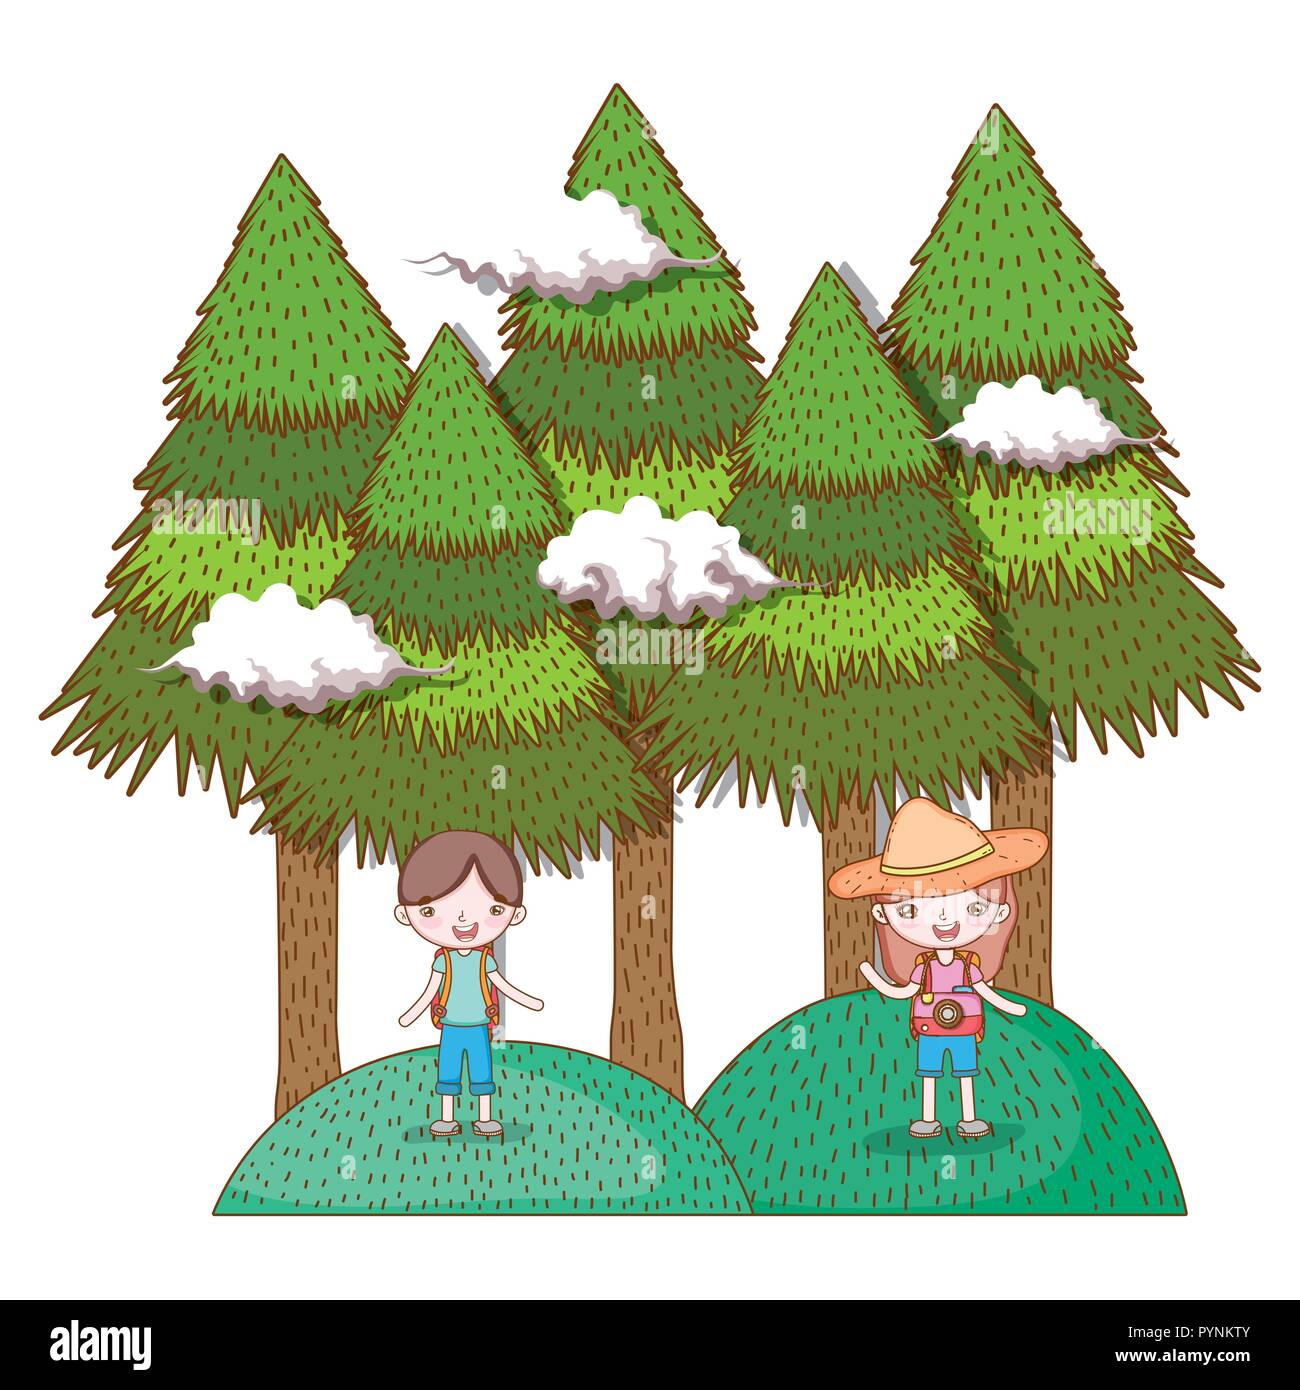 girl and boy in the mountains with pine trees - Stock Image